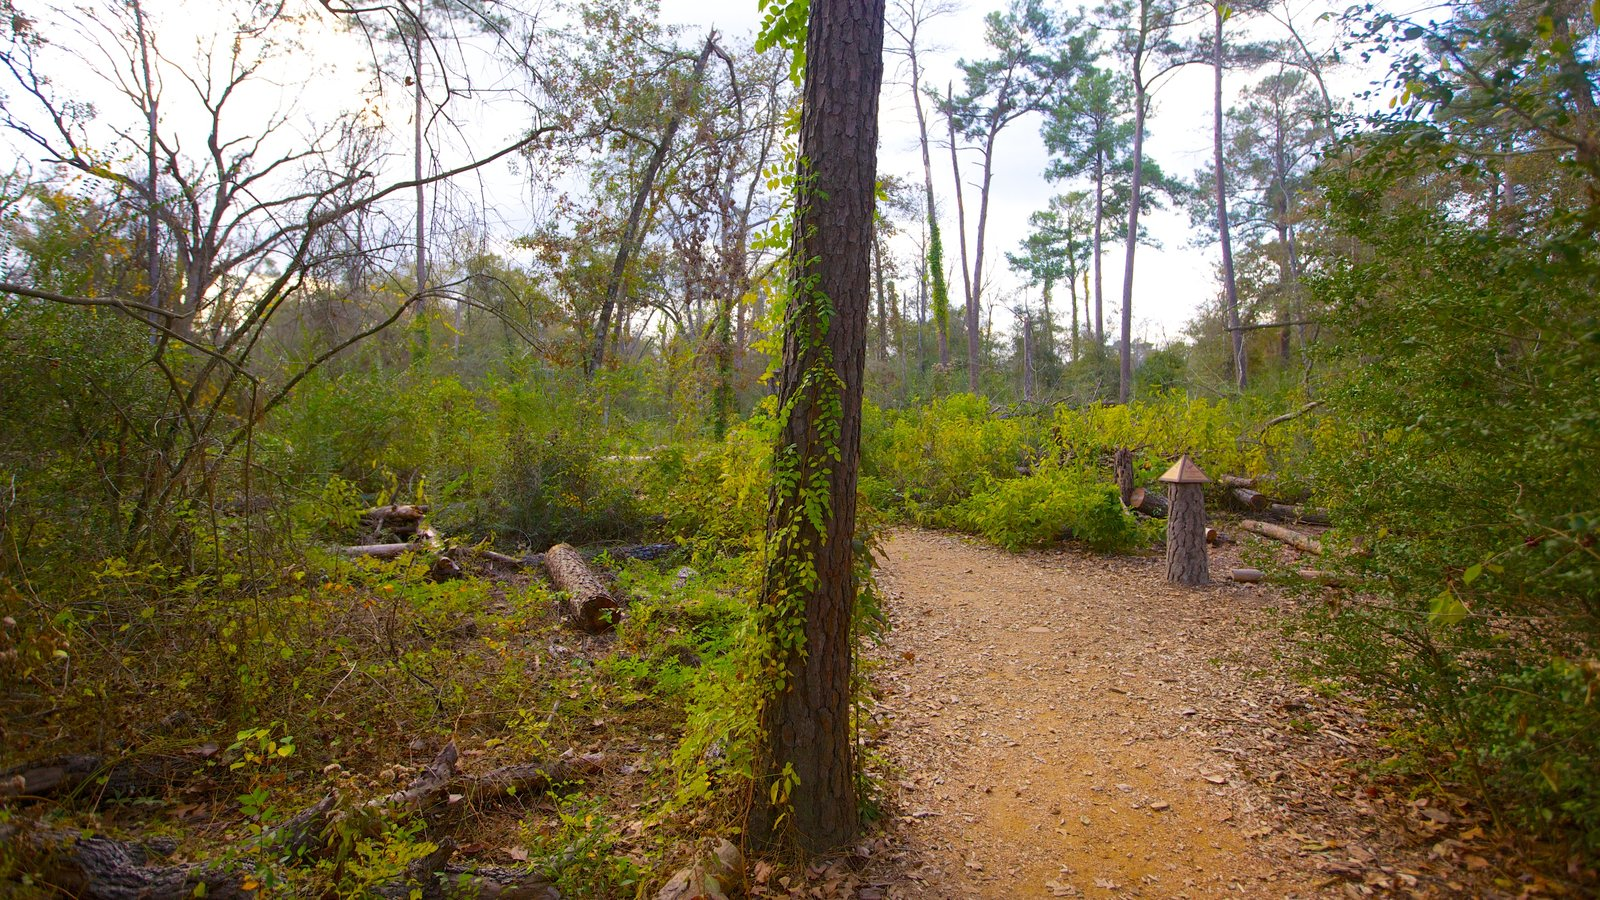 Peaceful Pictures: View Images of Houston Arboretum and Nature Center